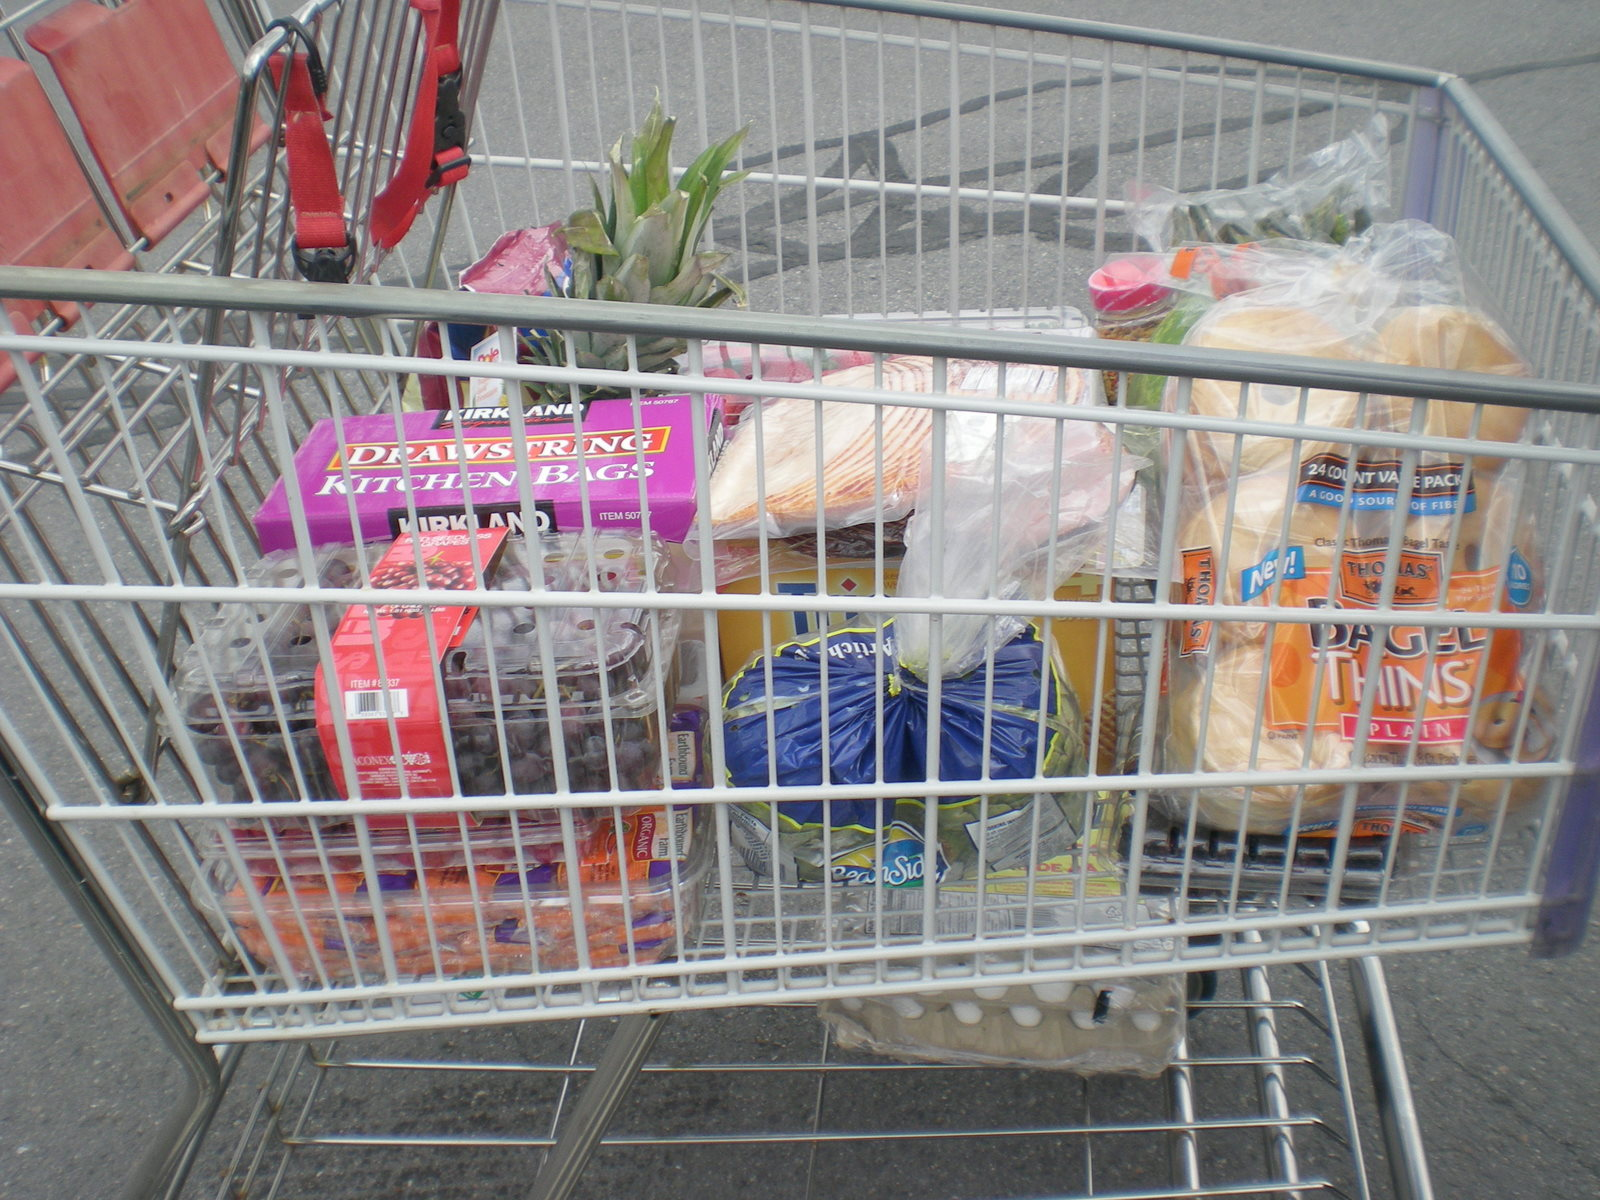 Today when I was grocery shopping, I was over looking what was in my ...